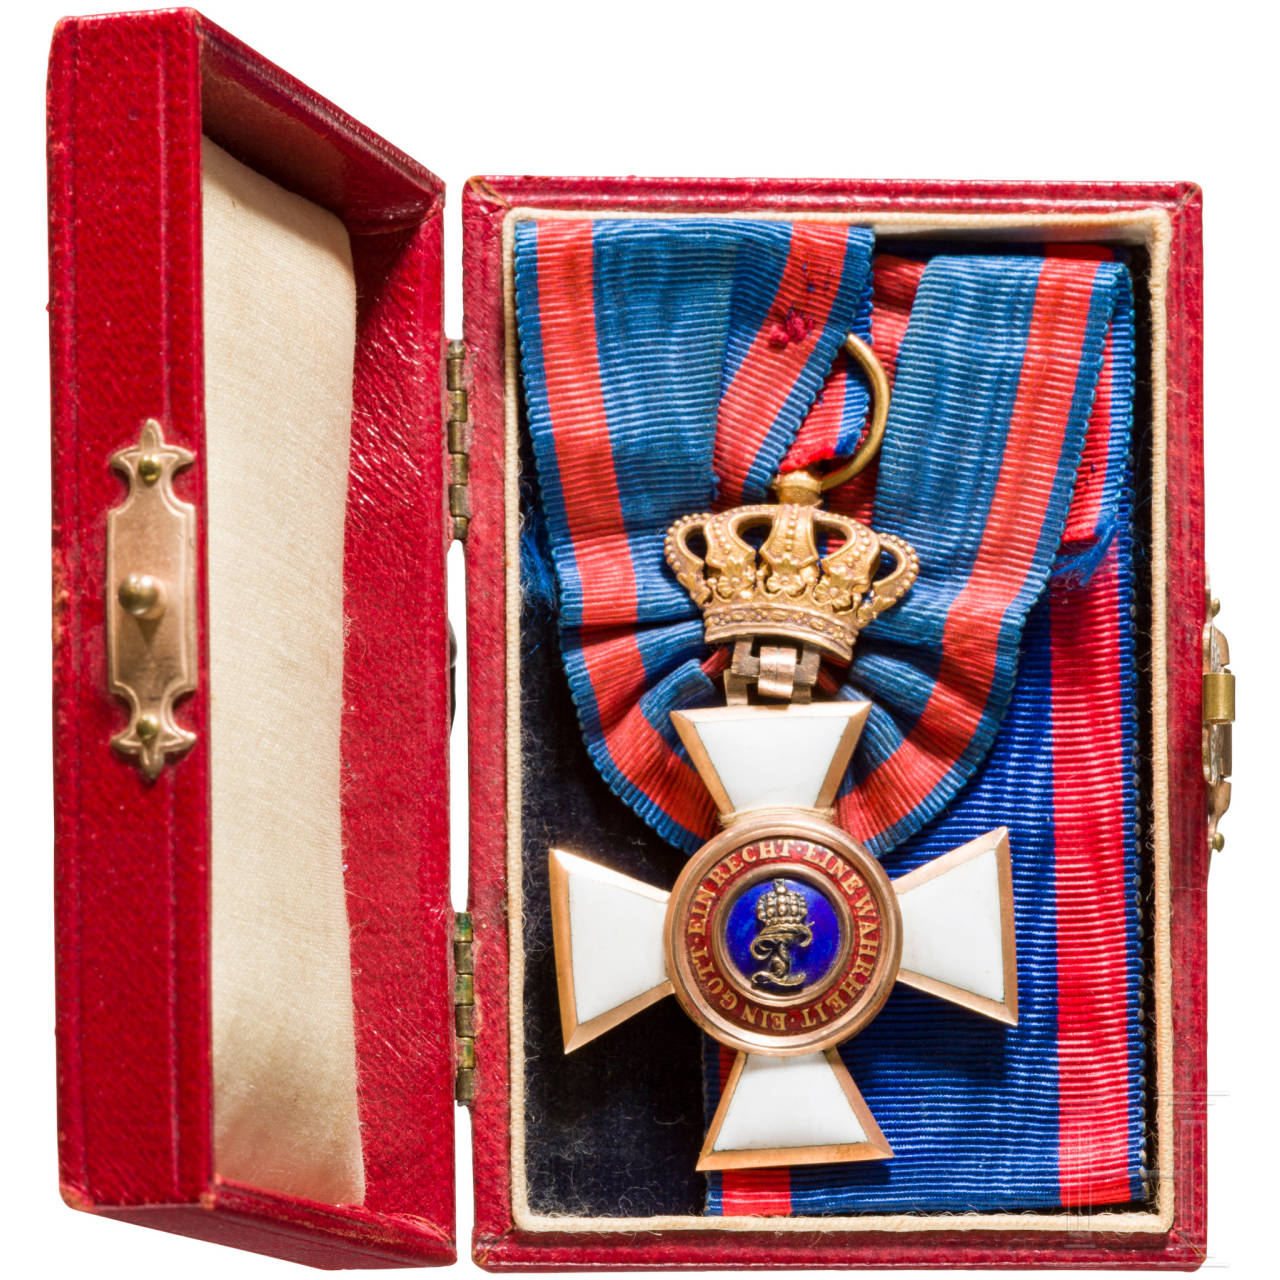 Oldenburg Order of Merit - knight's cross 1st class in case